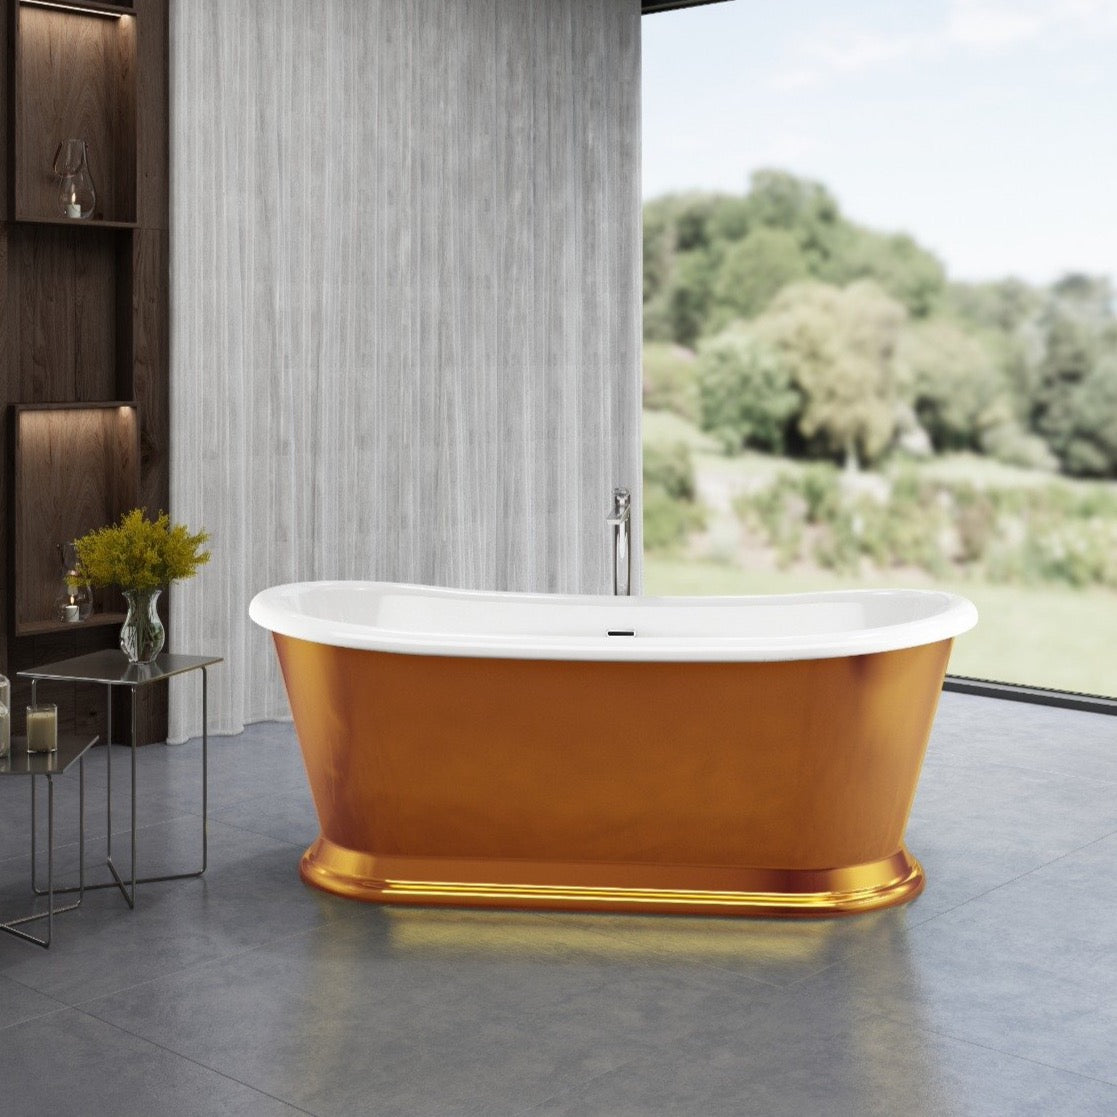 Charlotte Edwards Rosemary Copper 1700mm Freestanding Bath